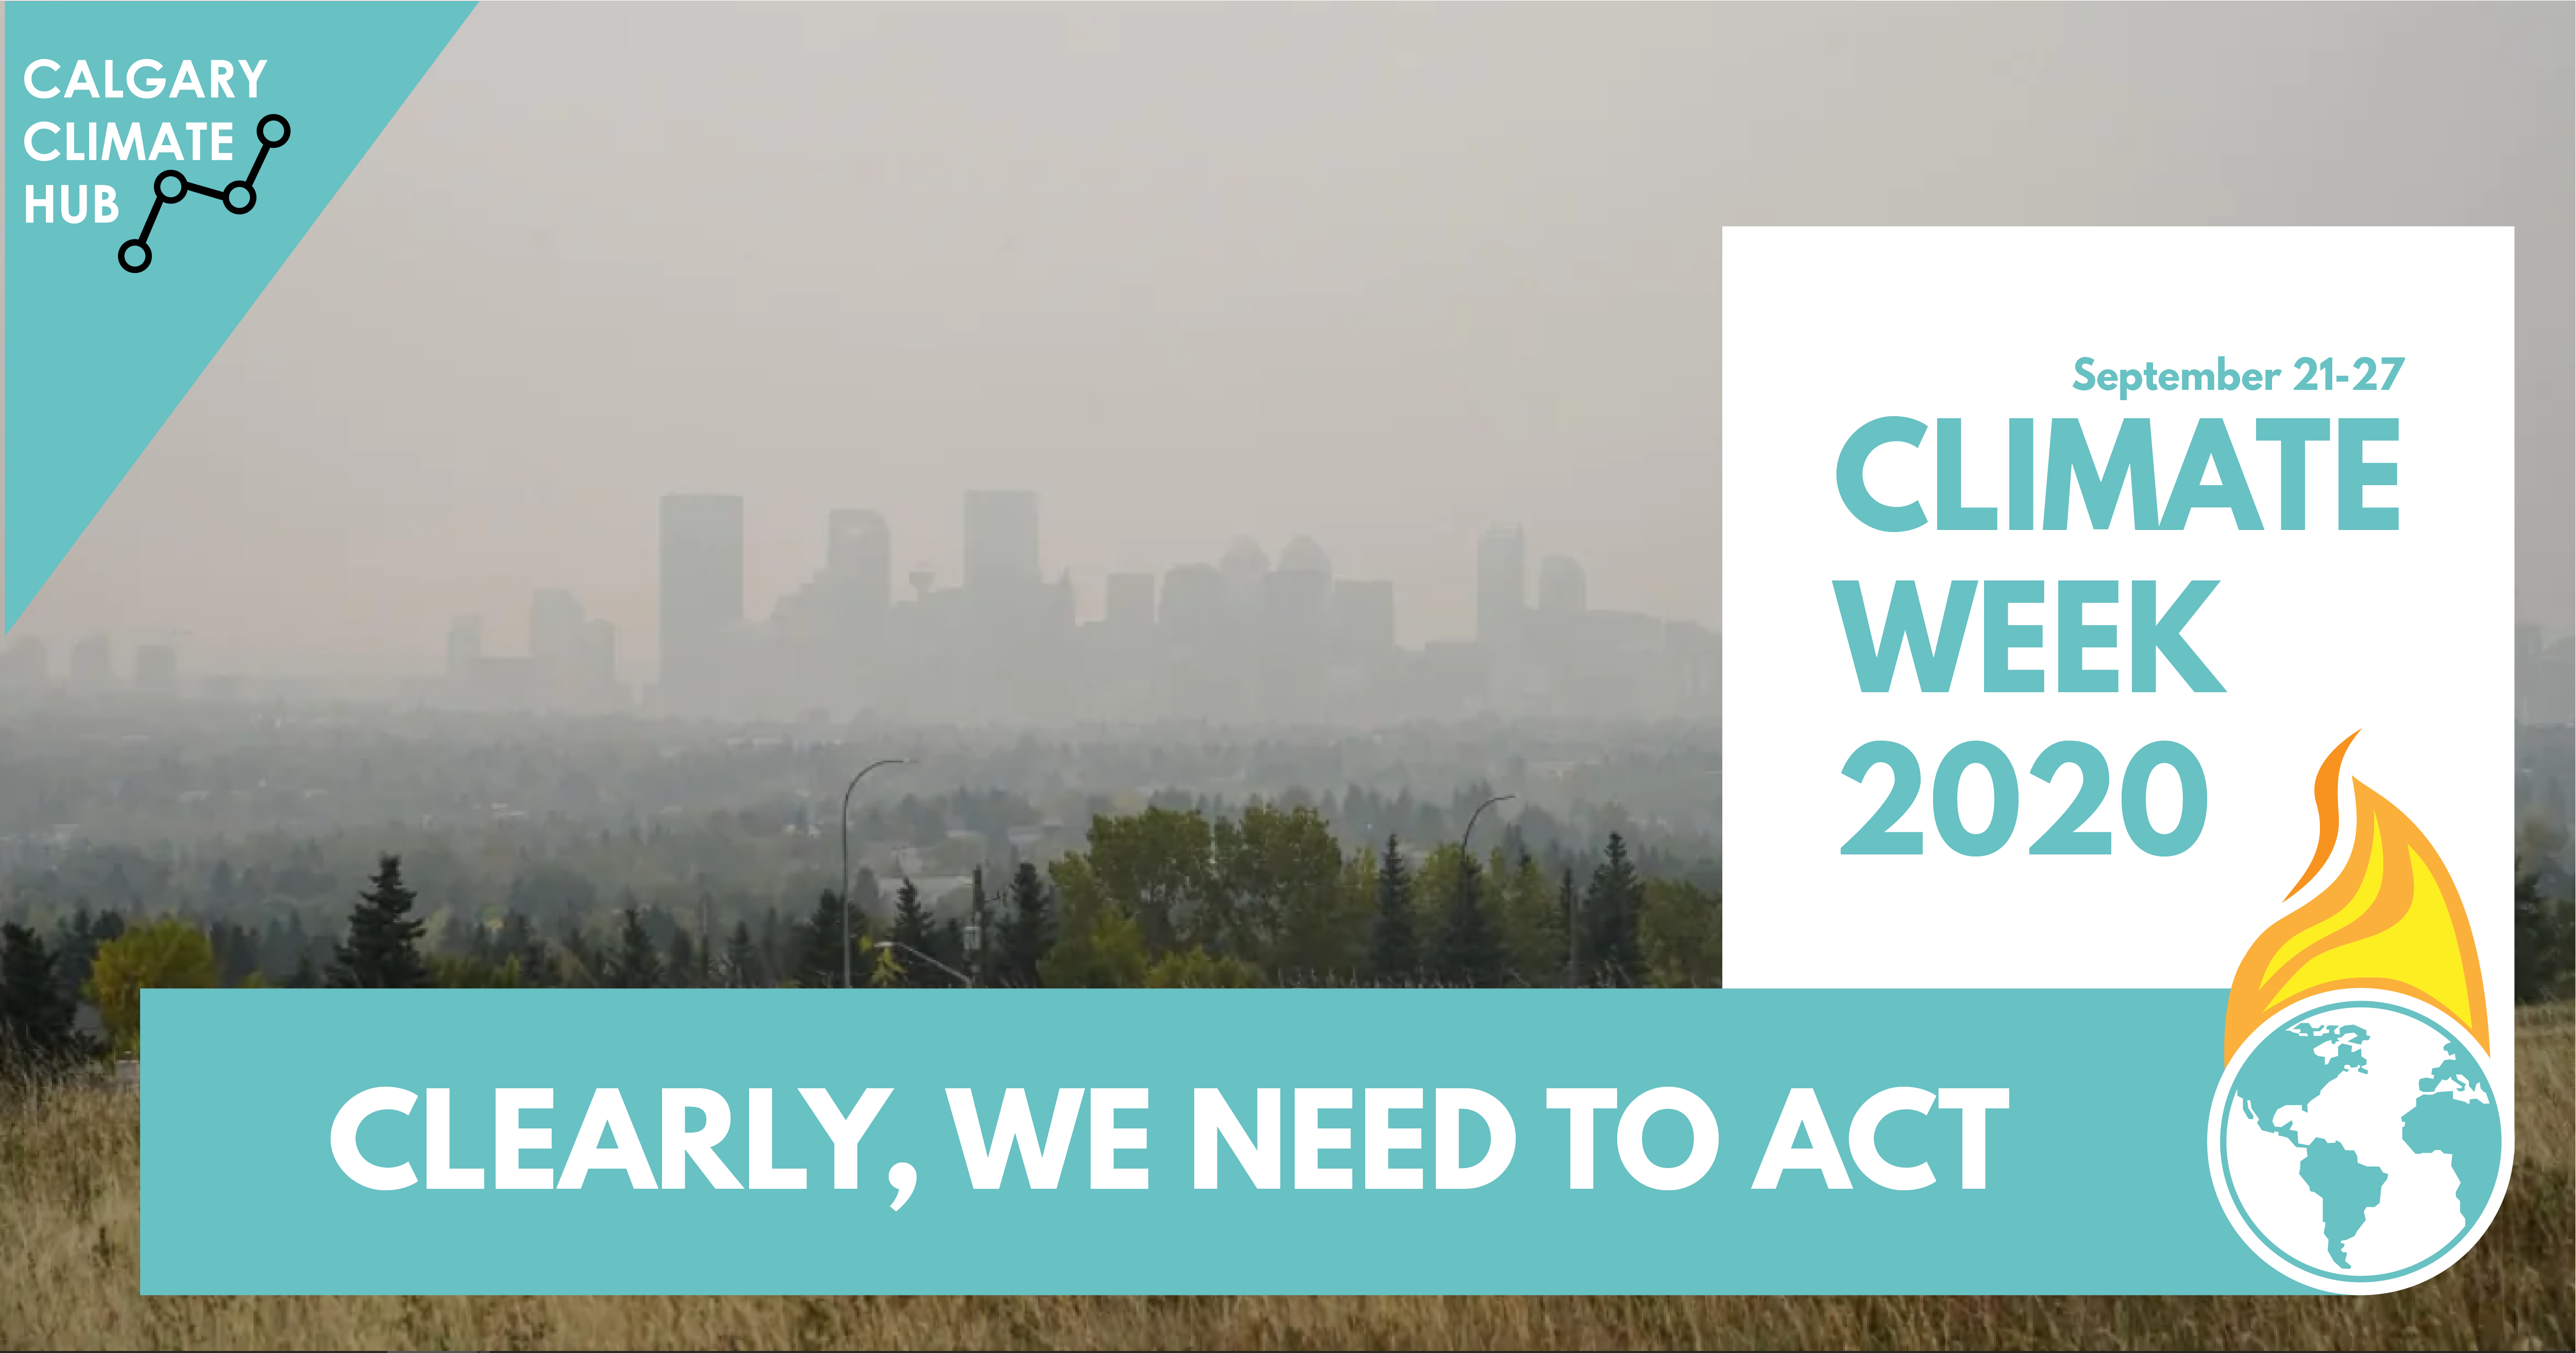 Calgary skyline obscured by smoke with headline Clearly, we need to act and climate week 2020 logo depicting flames coming out of the globe